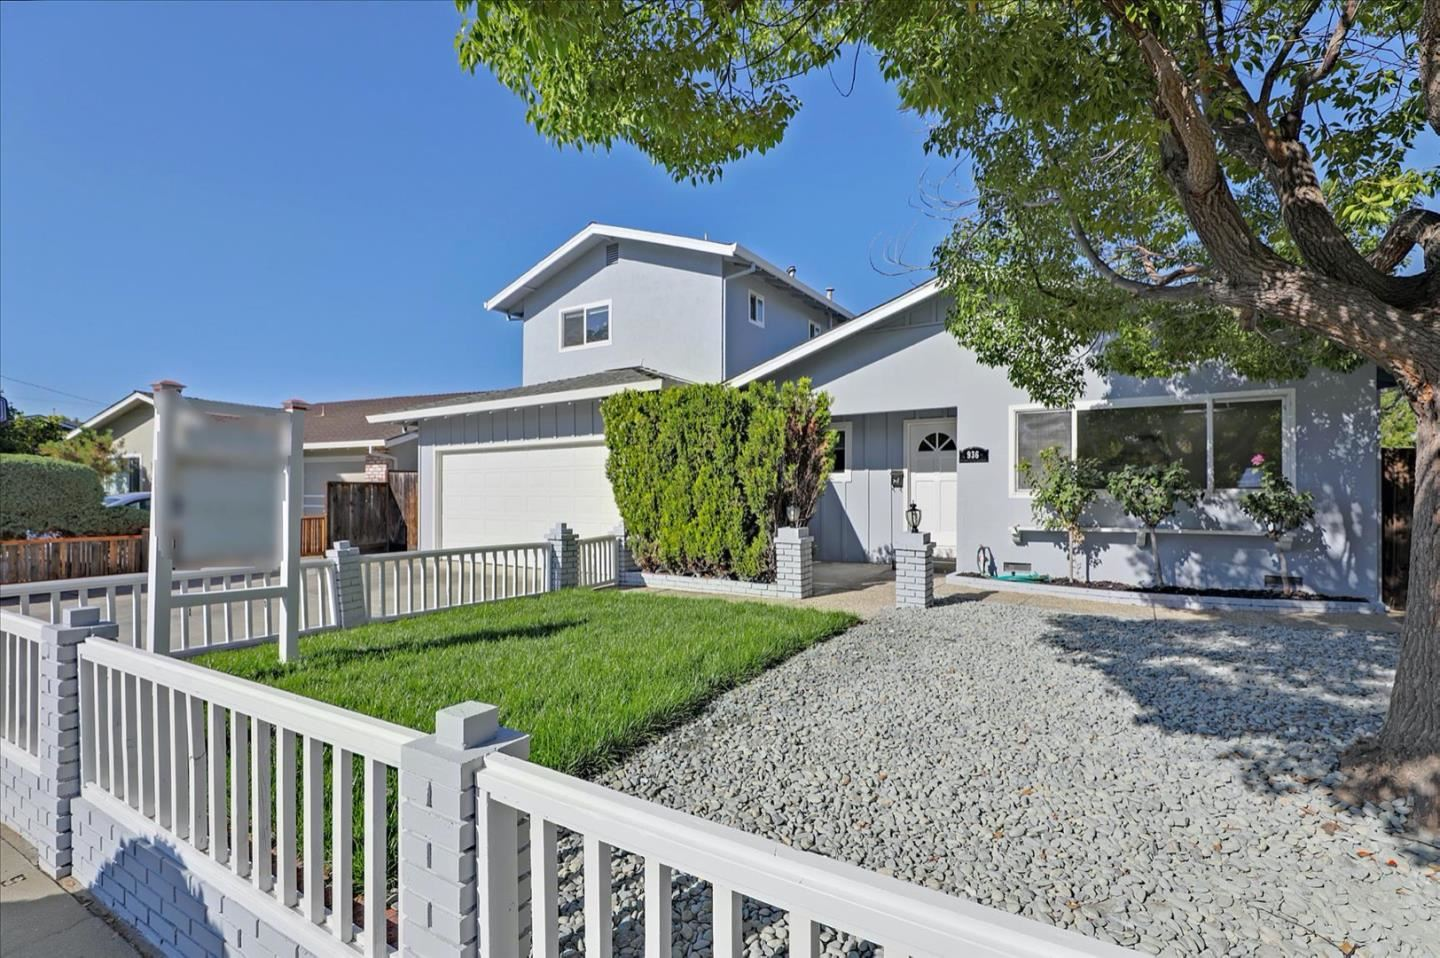 Photo for 936 September Drive, CUPERTINO, CA 95014 (MLS # ML81854361)